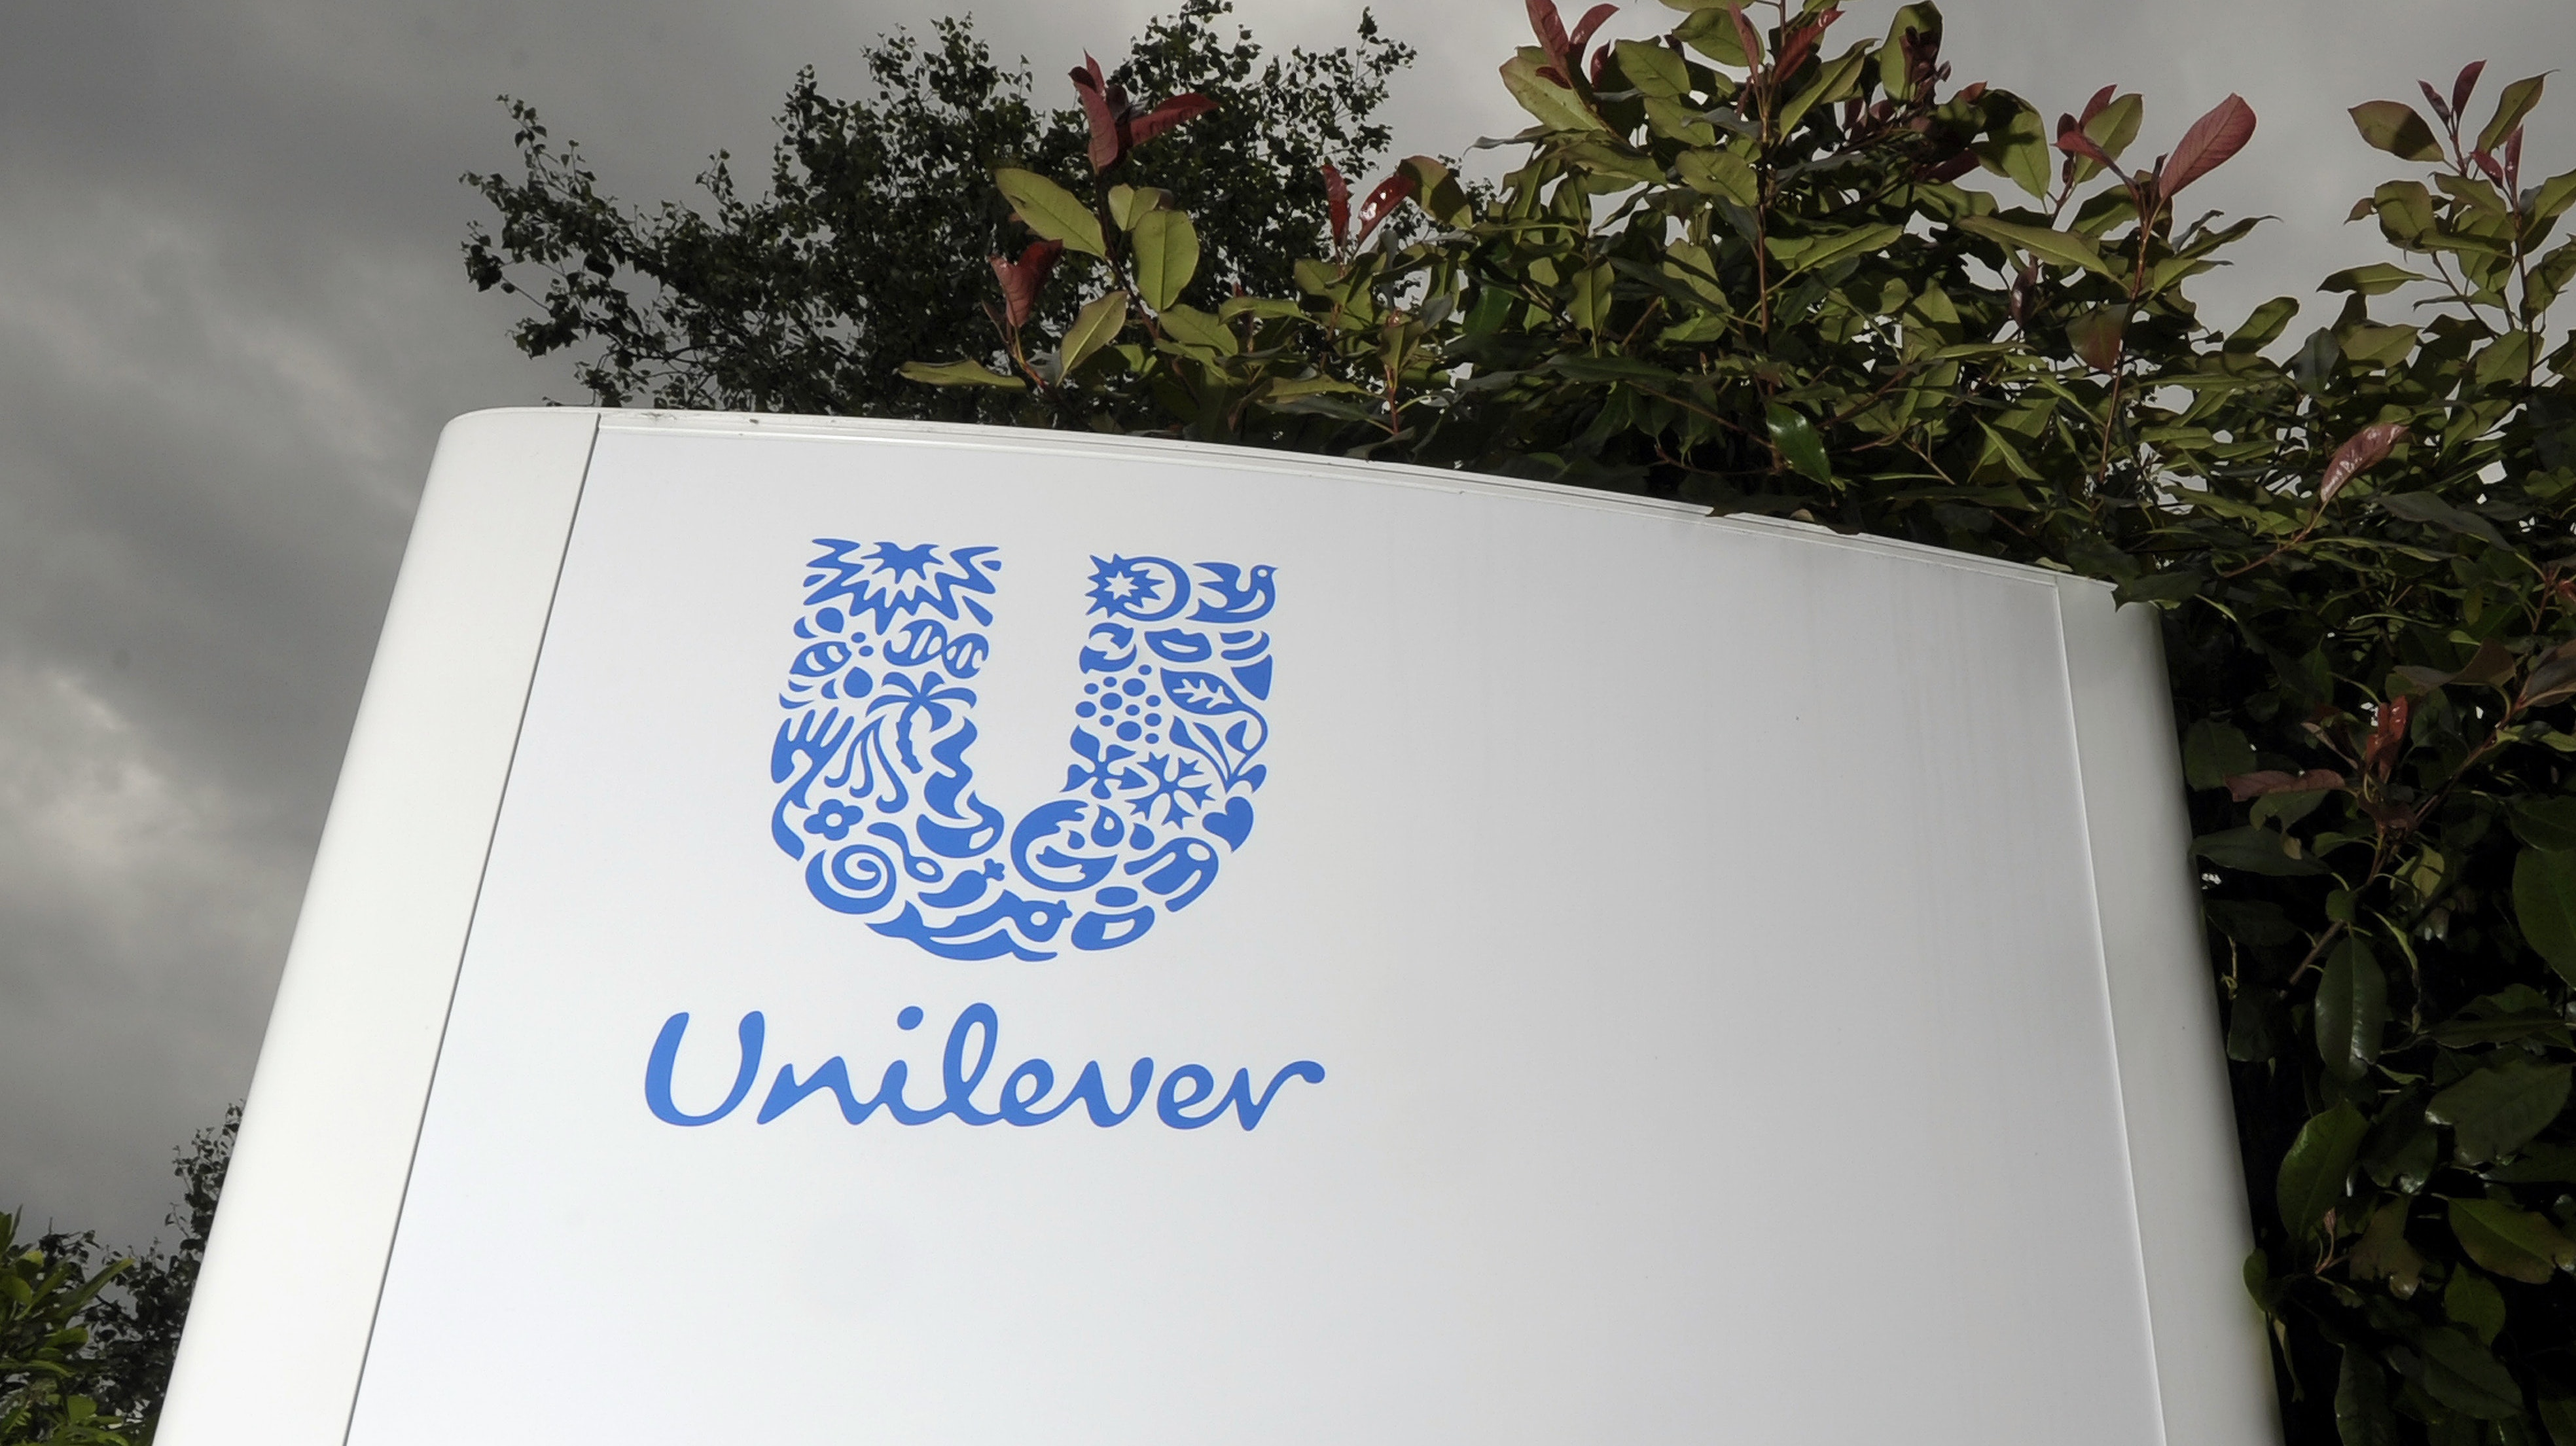 Unilever Switches Head Office To Rotterdam In Corporate Structure Shakeup